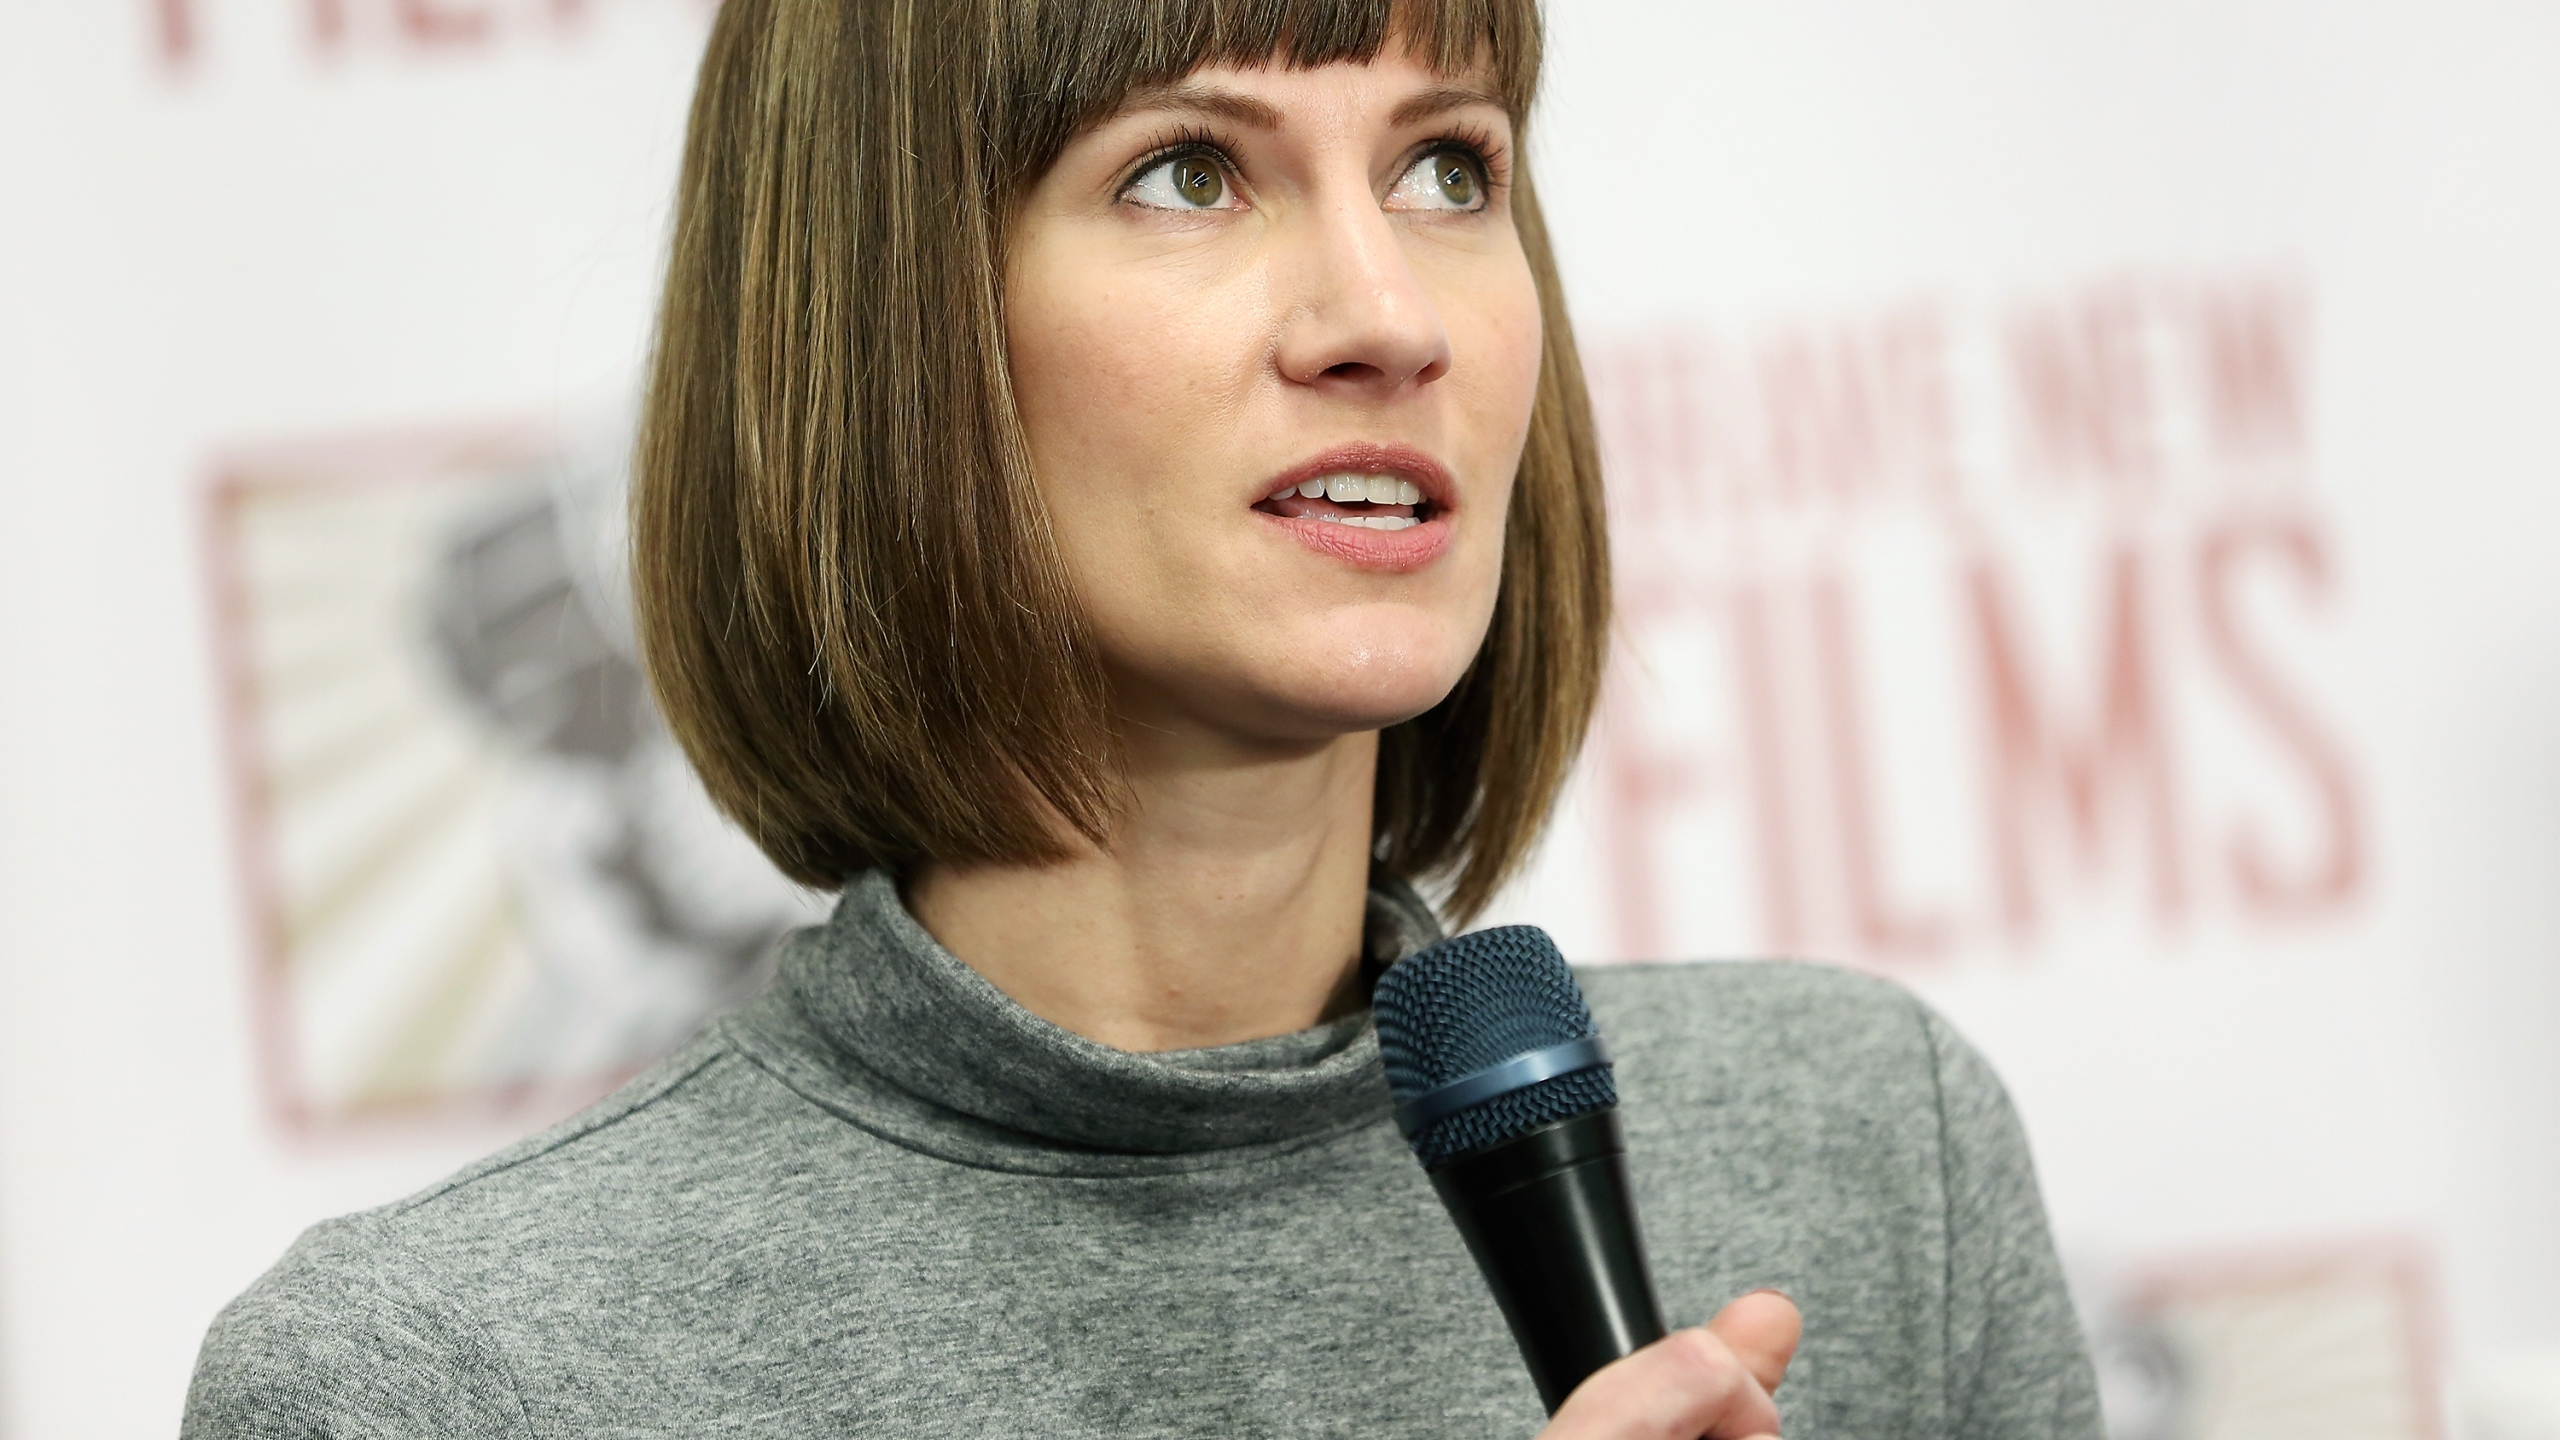 Rachel Crooks speaks during a press conference held by women accusing Trump of sexual harassment in New York City on Dec. 11, 2017. (Credit: Monica Schipper/Getty Images)